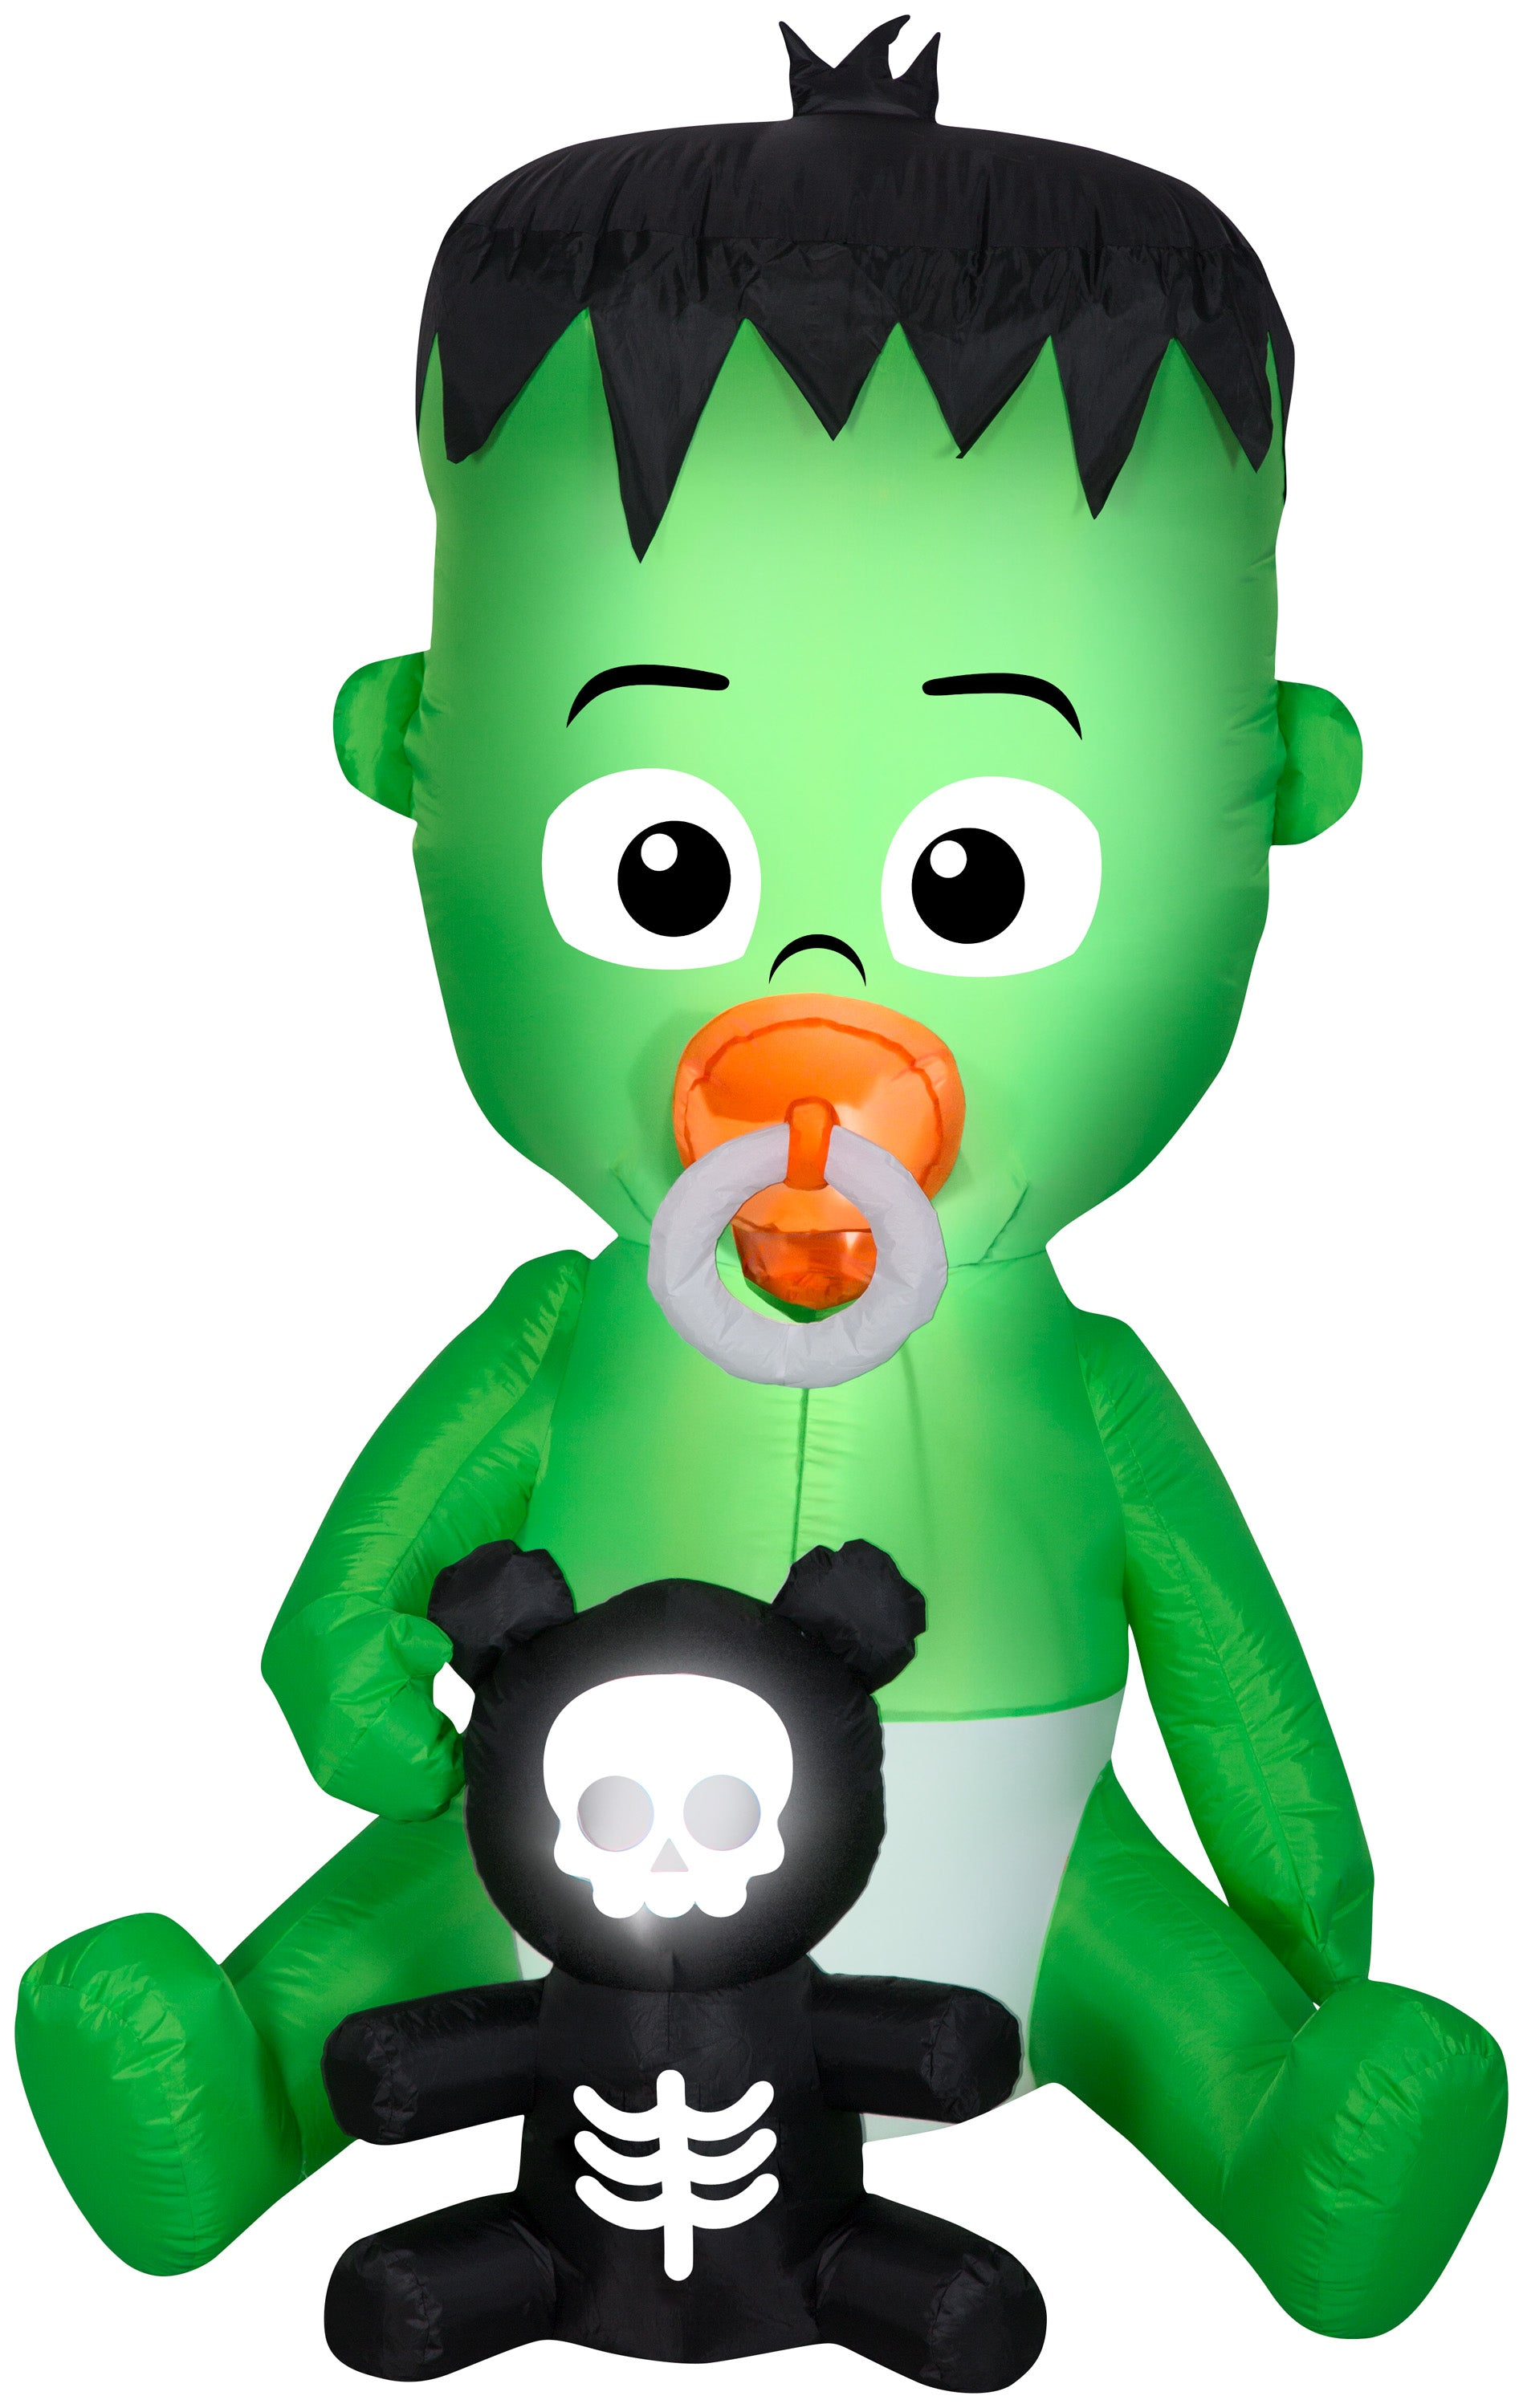 Gemmy Animated Airblown Nom Nom Baby w/Pacifier, 5.5 ft Tall, green